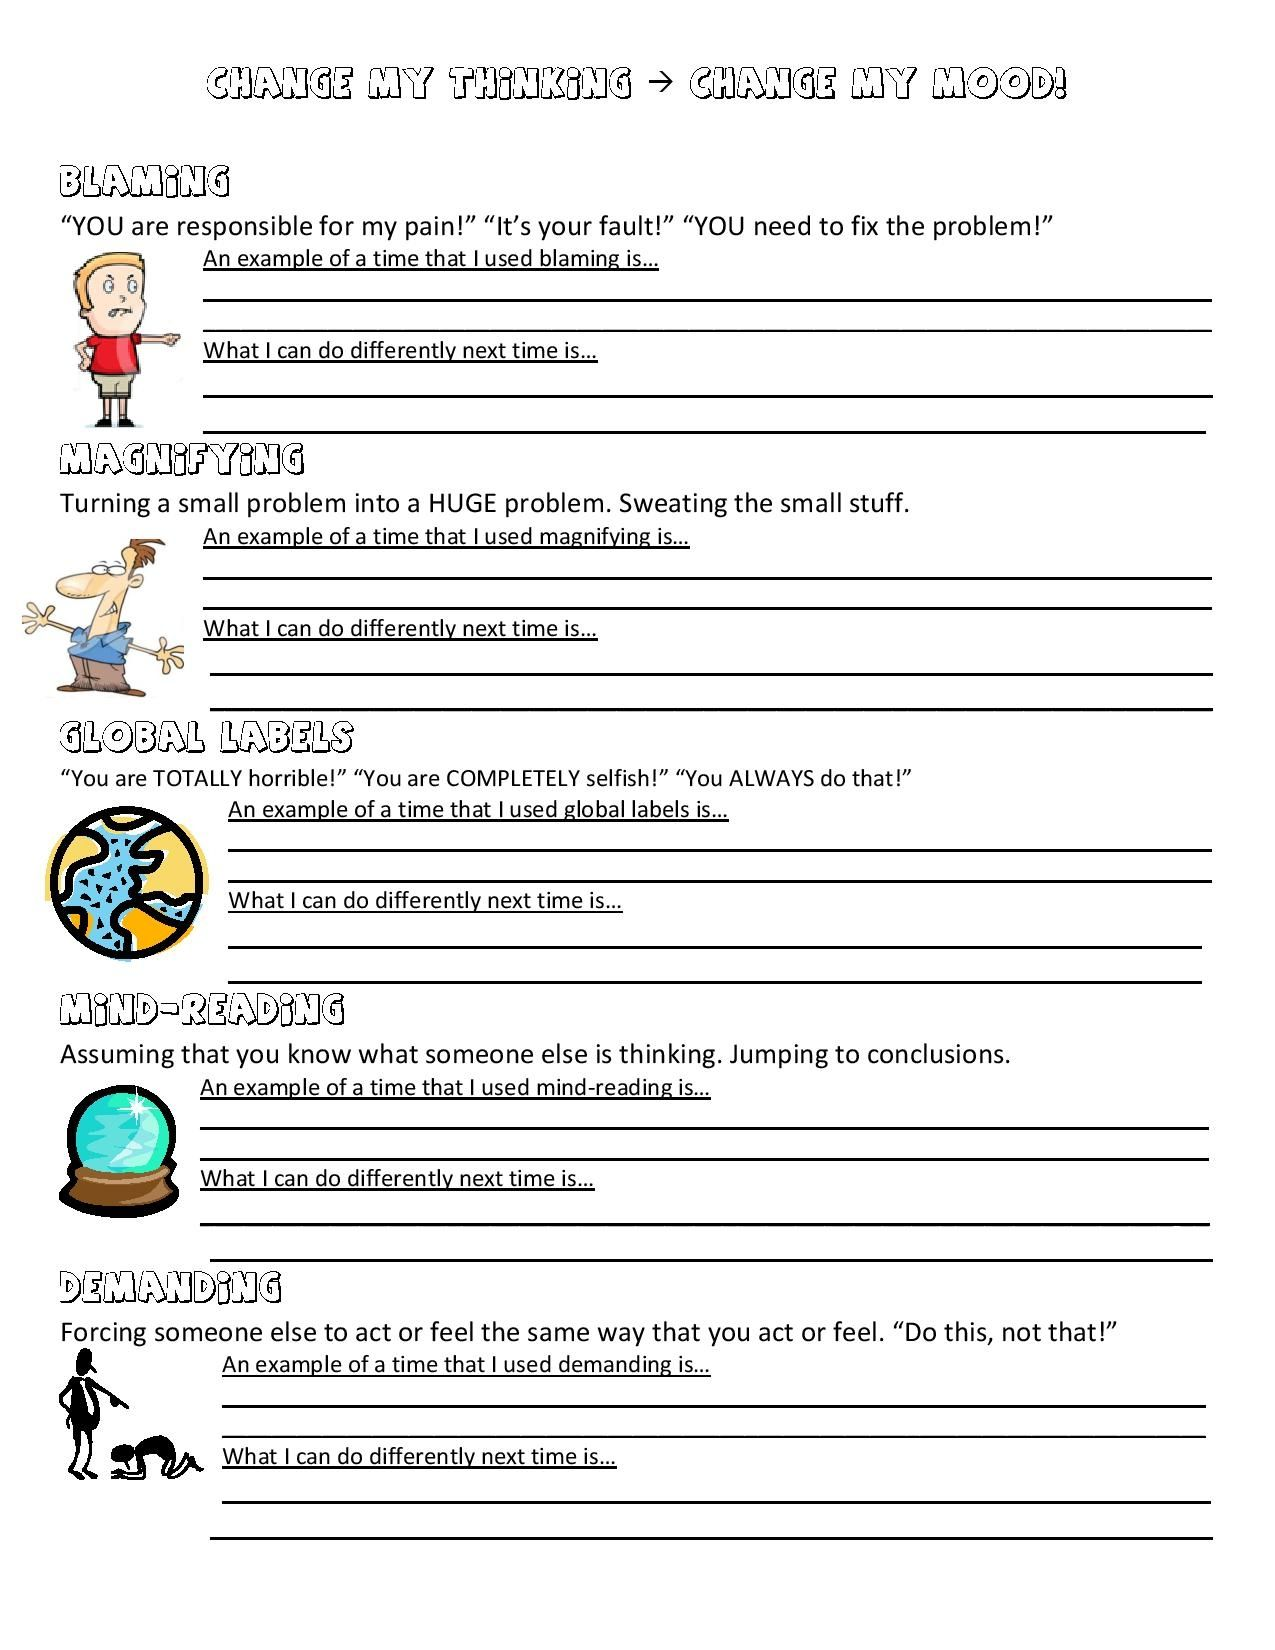 Printables Anger Management Therapy Worksheets 1000 images about anger management on pinterest anxiety activities and for kids